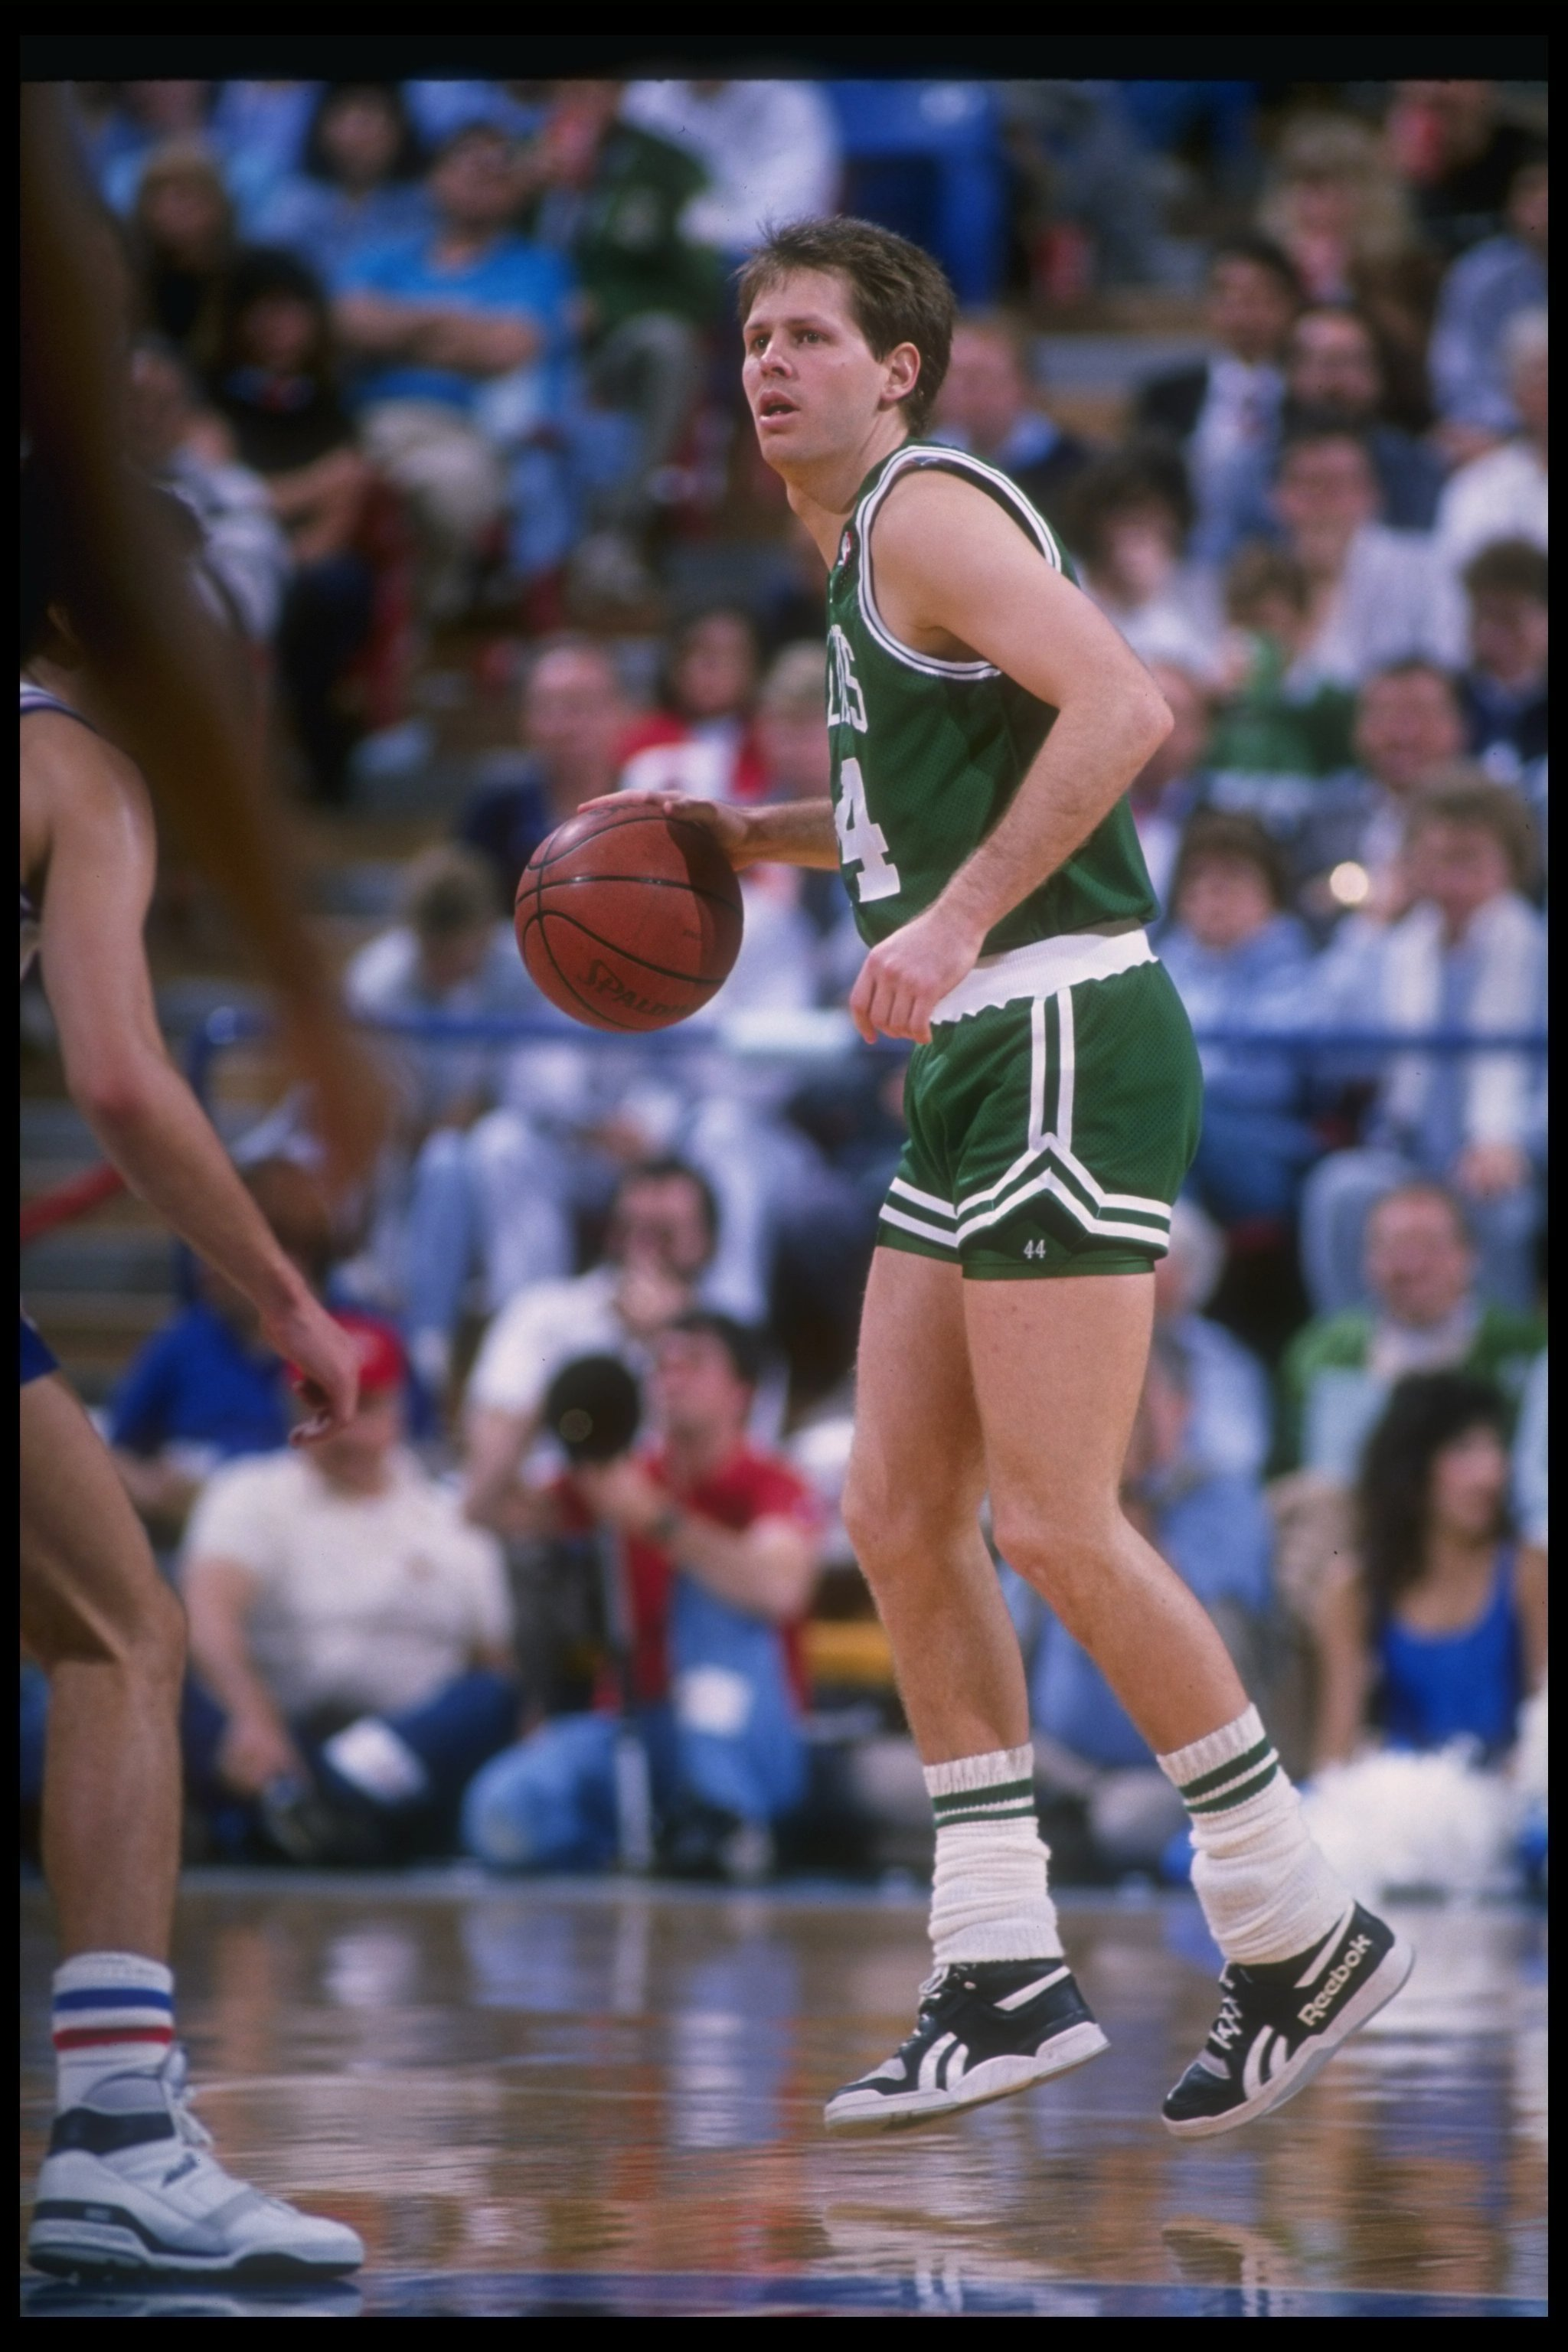 Danny Ainge of the Boston Celtics moves the ball during a game.